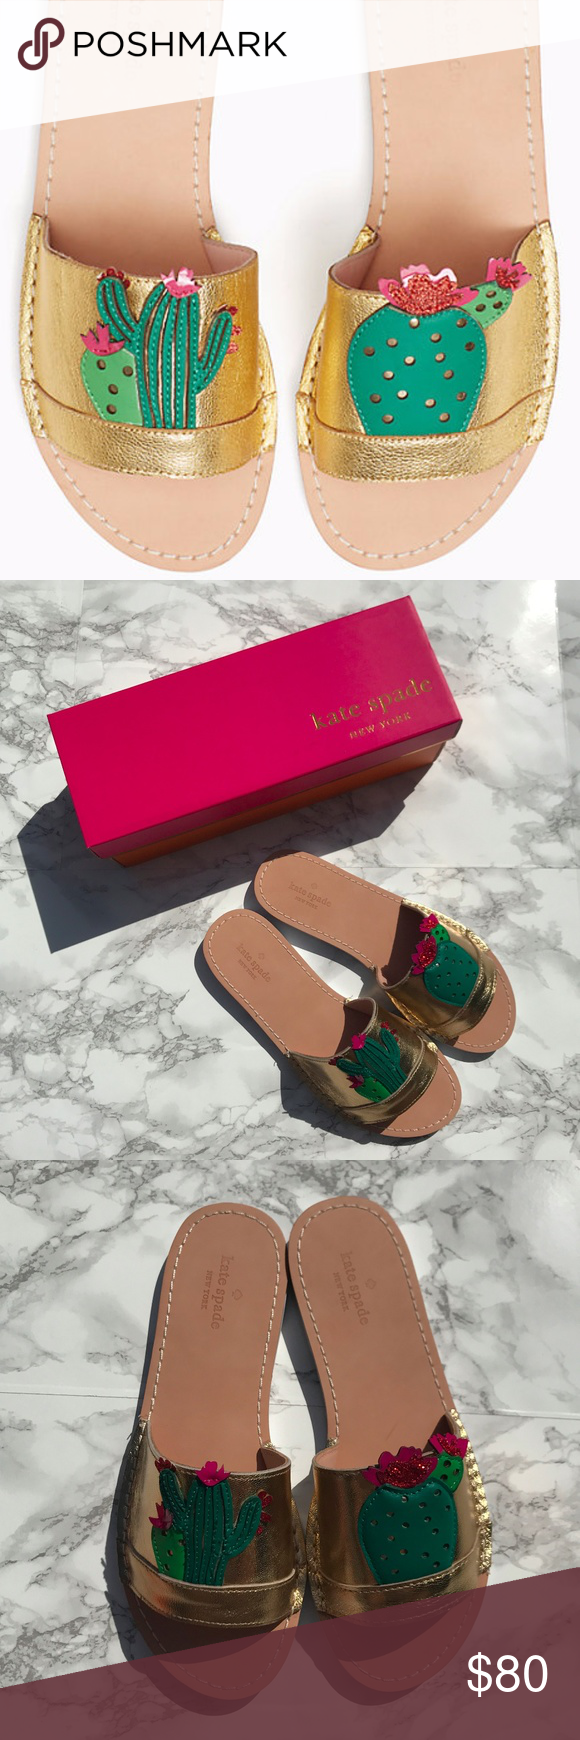 9c5a201bf1a8 NEW Kate Spade Iguana Cactus Slide Sandals New in box Kate Spade  Iguana   sandals